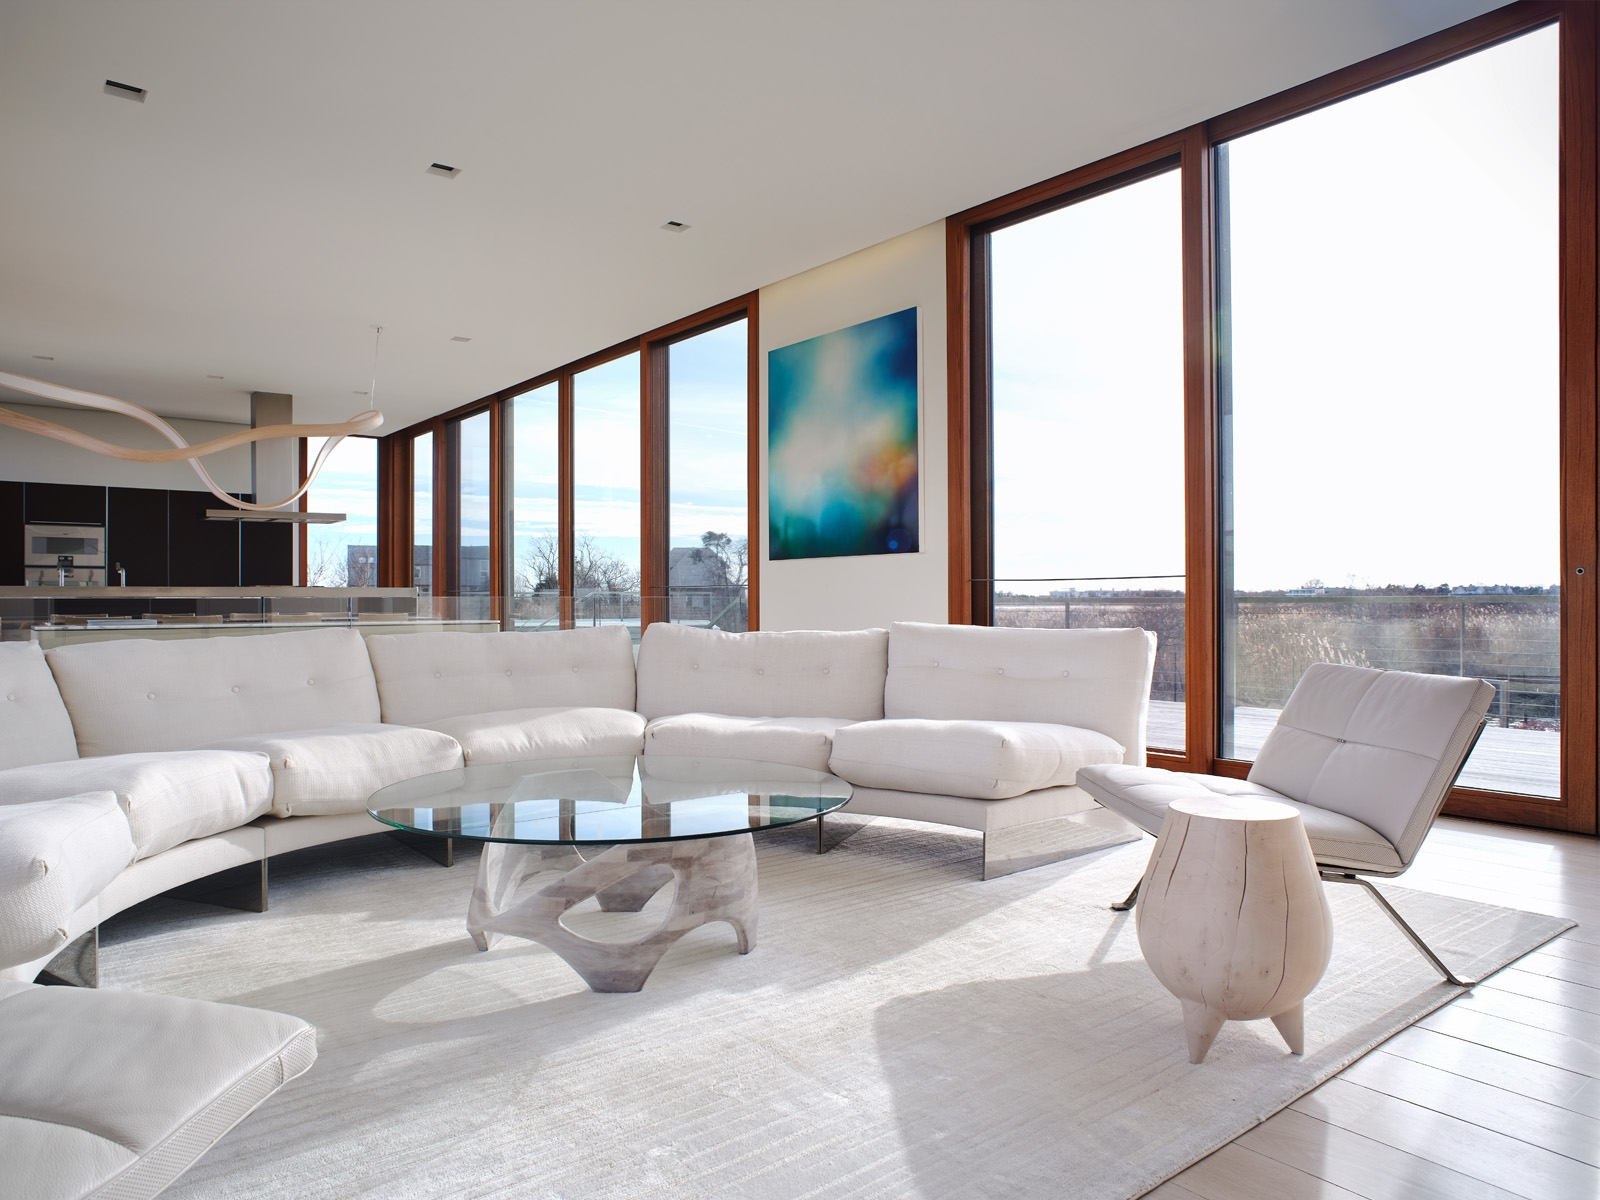 Living Room - Interior Design by Stelle Lomont Rouhani